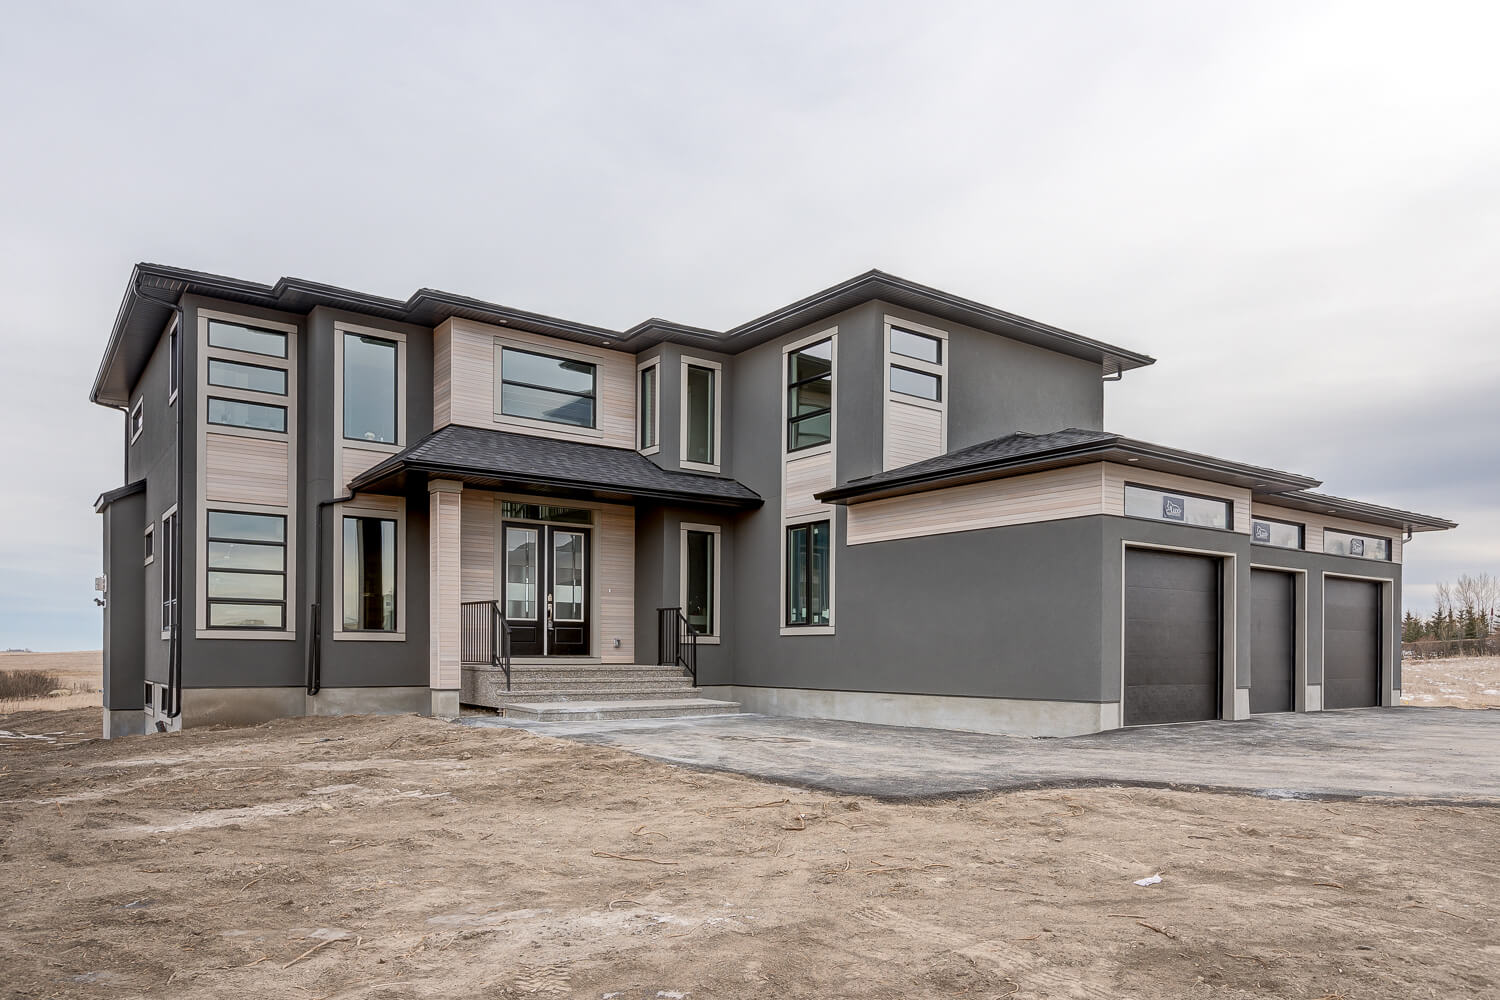 Suigeneris Homes - Custom Home Builds, Luxury Homes and Bungalows for Sale in Calgary